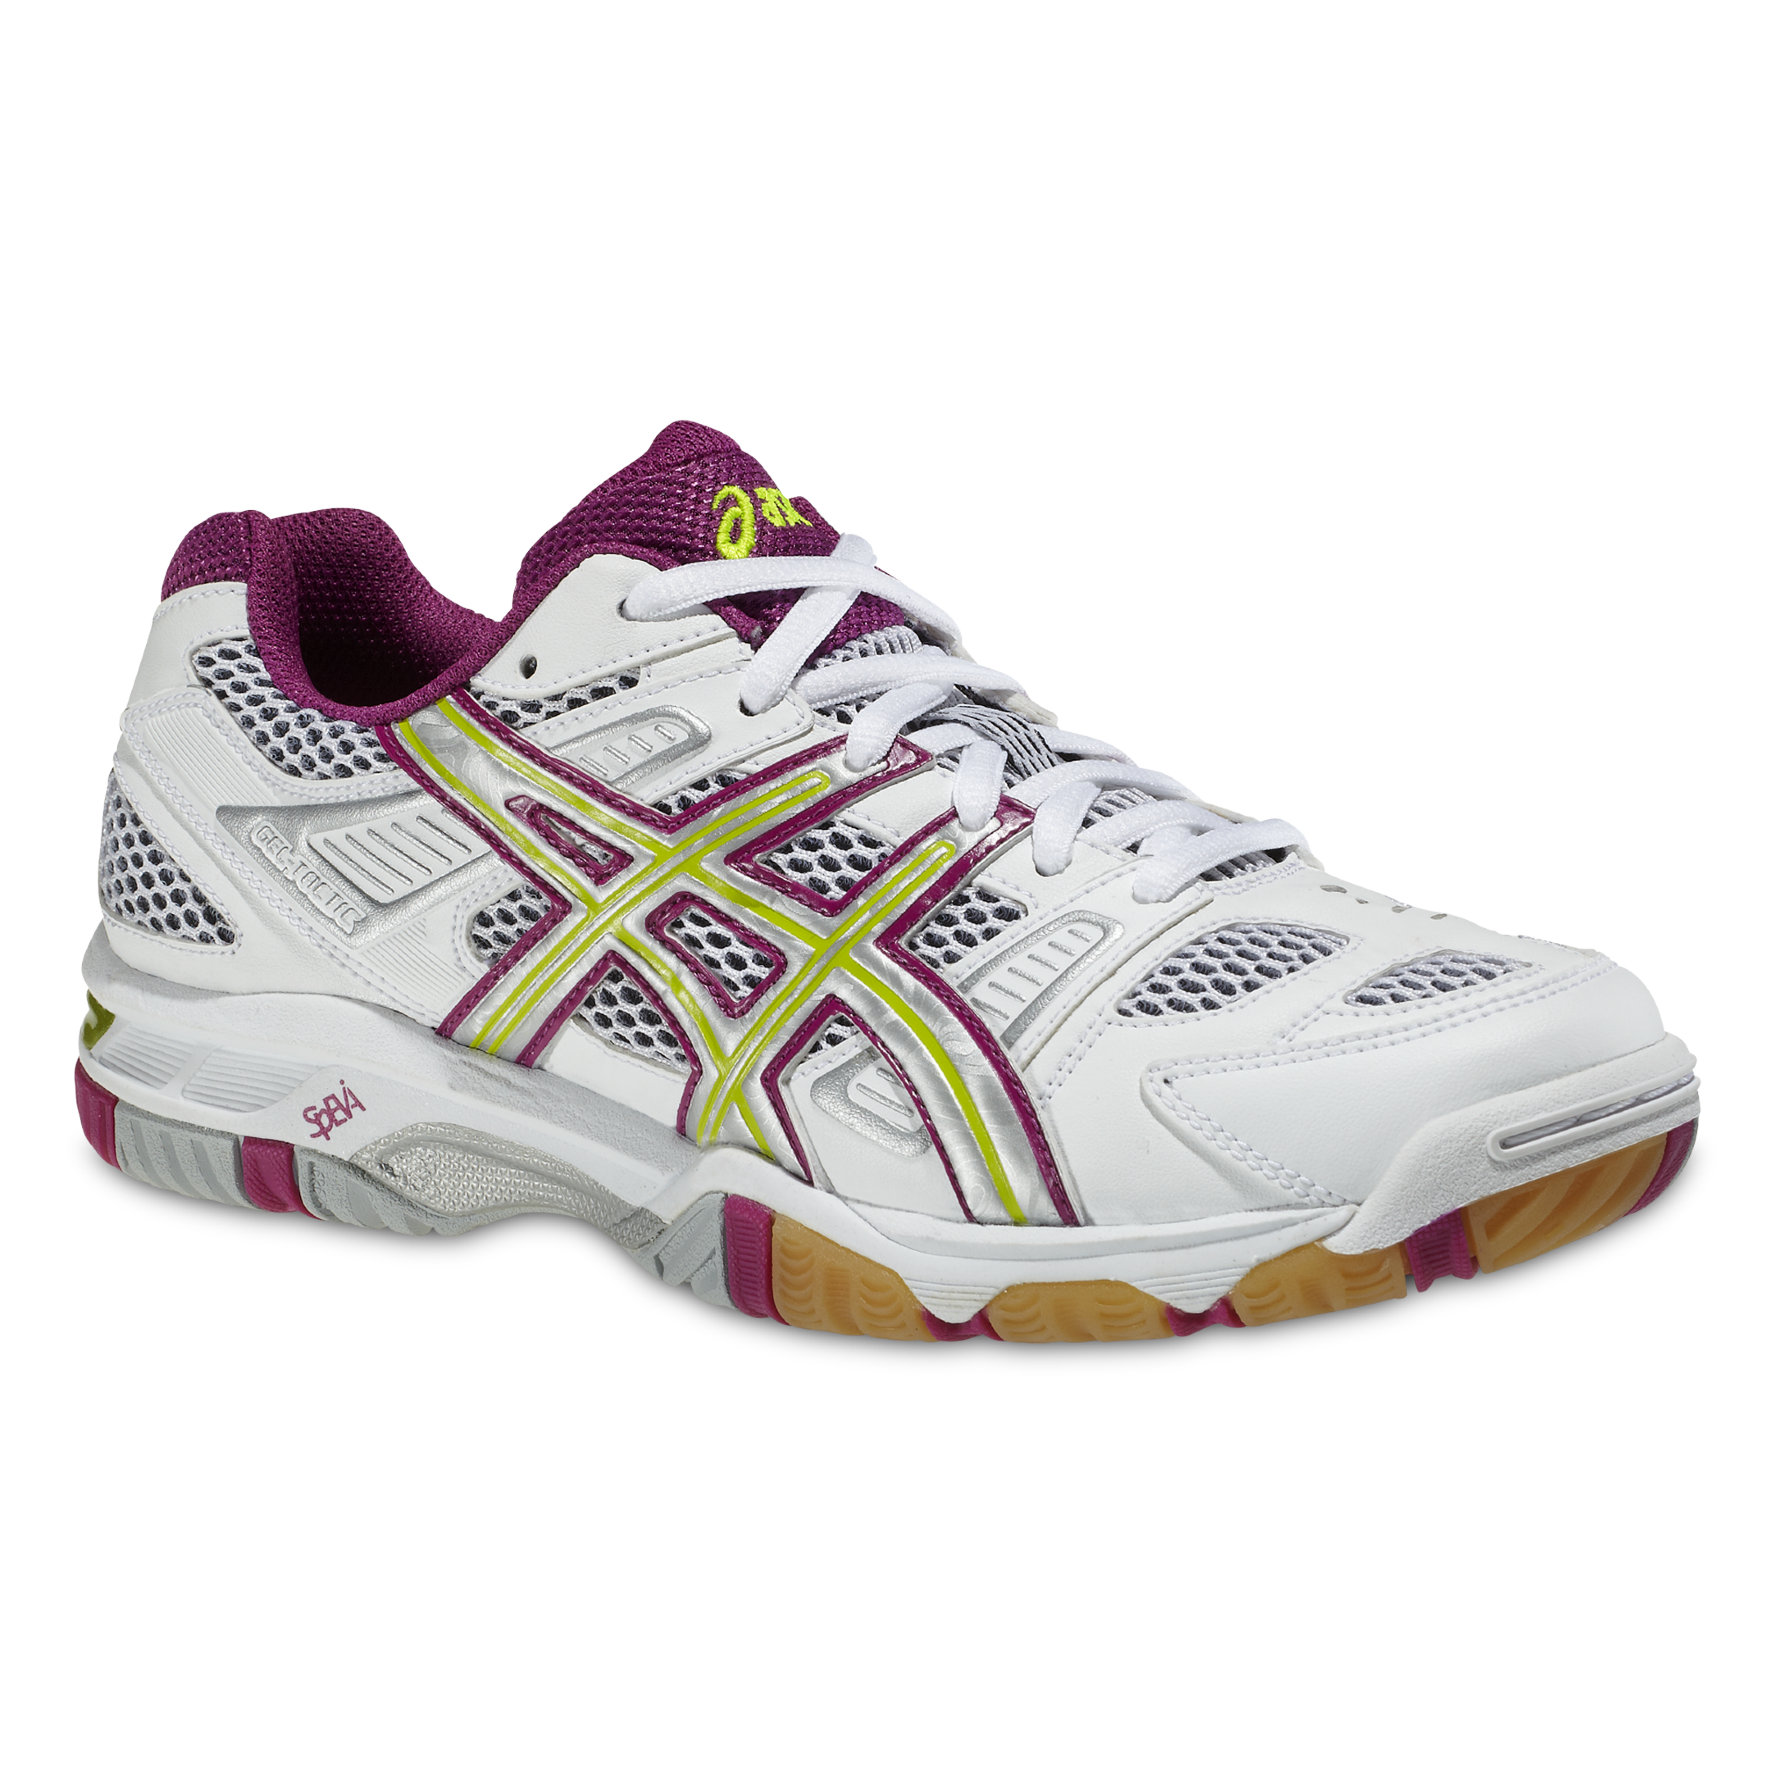 Asics Lady Gel Tactic in Weiß Lila